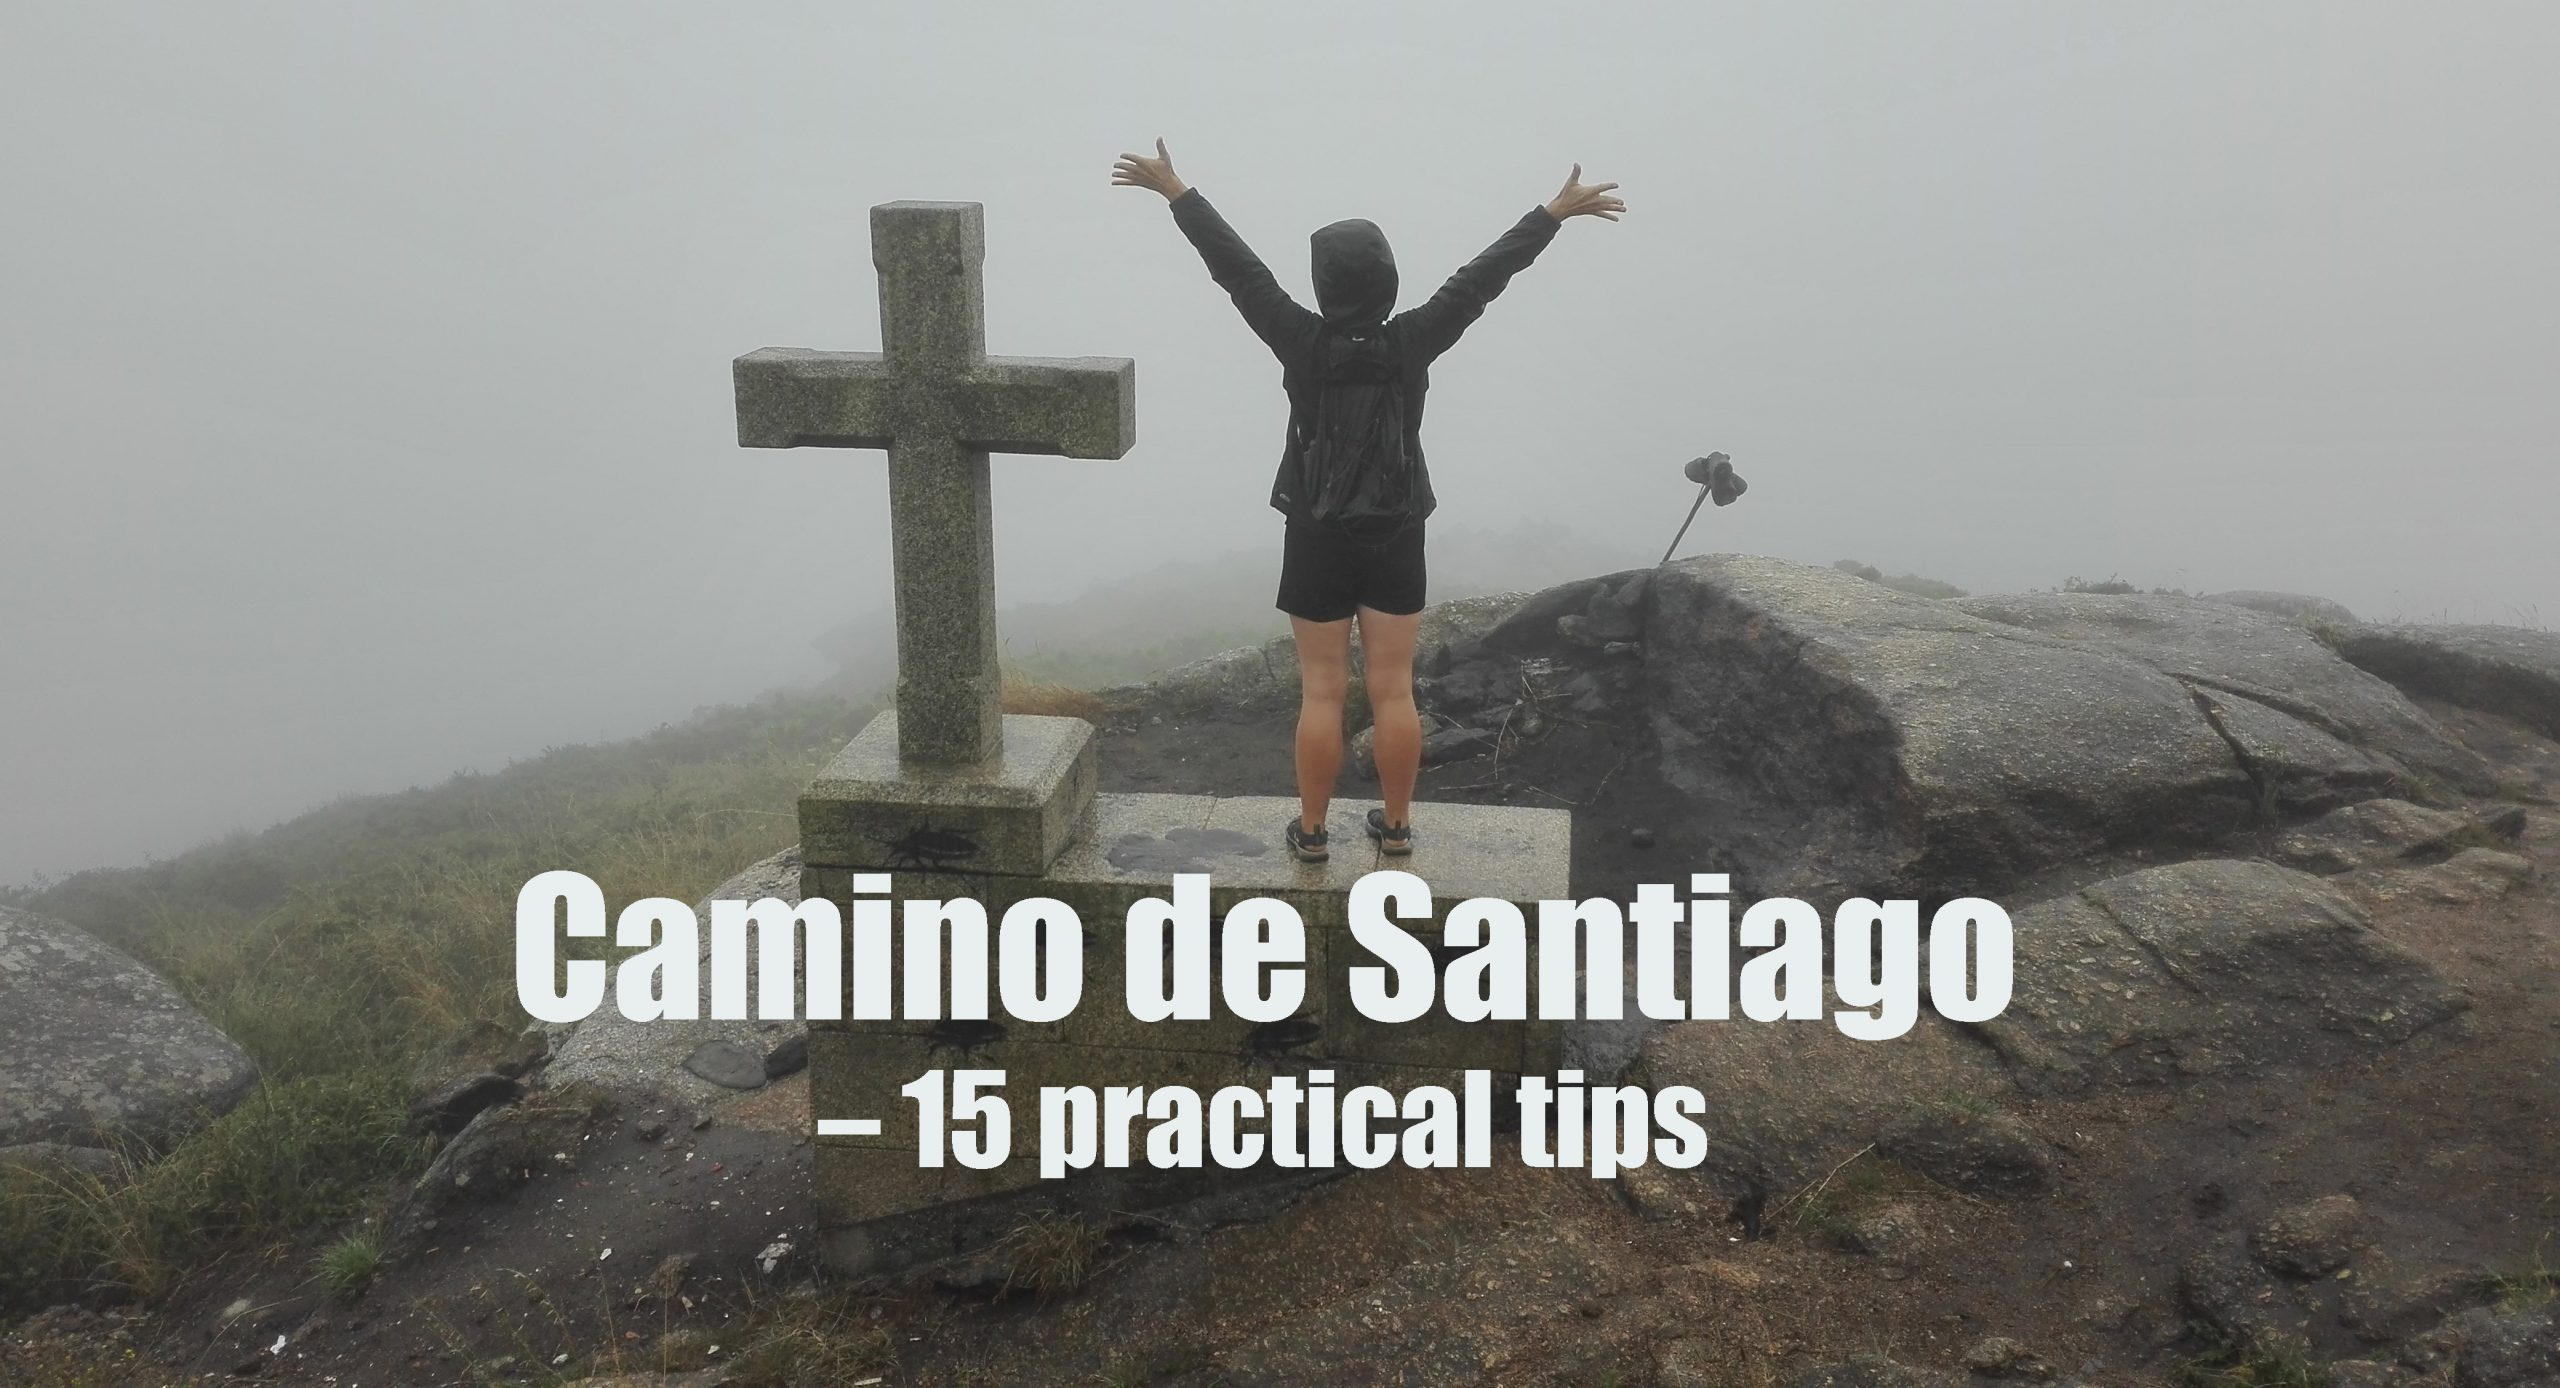 Camino de Santiago - 15 practical tips